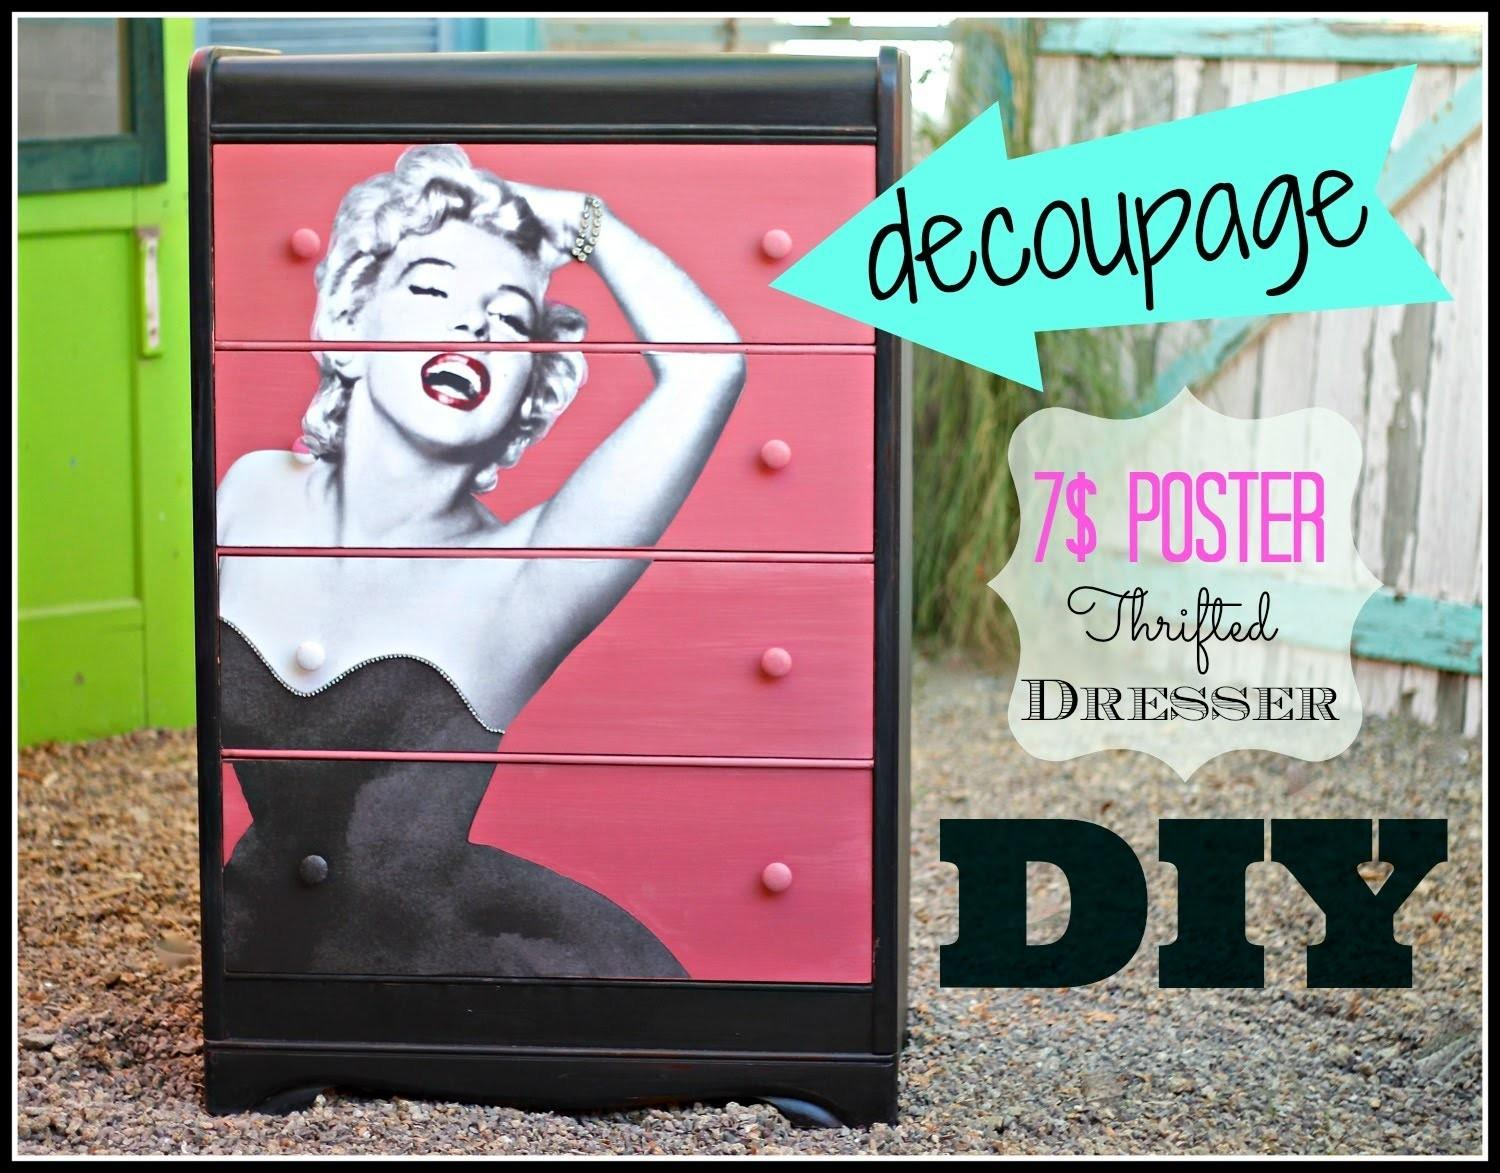 Decoupage Furniture Poster Cece Caldwell